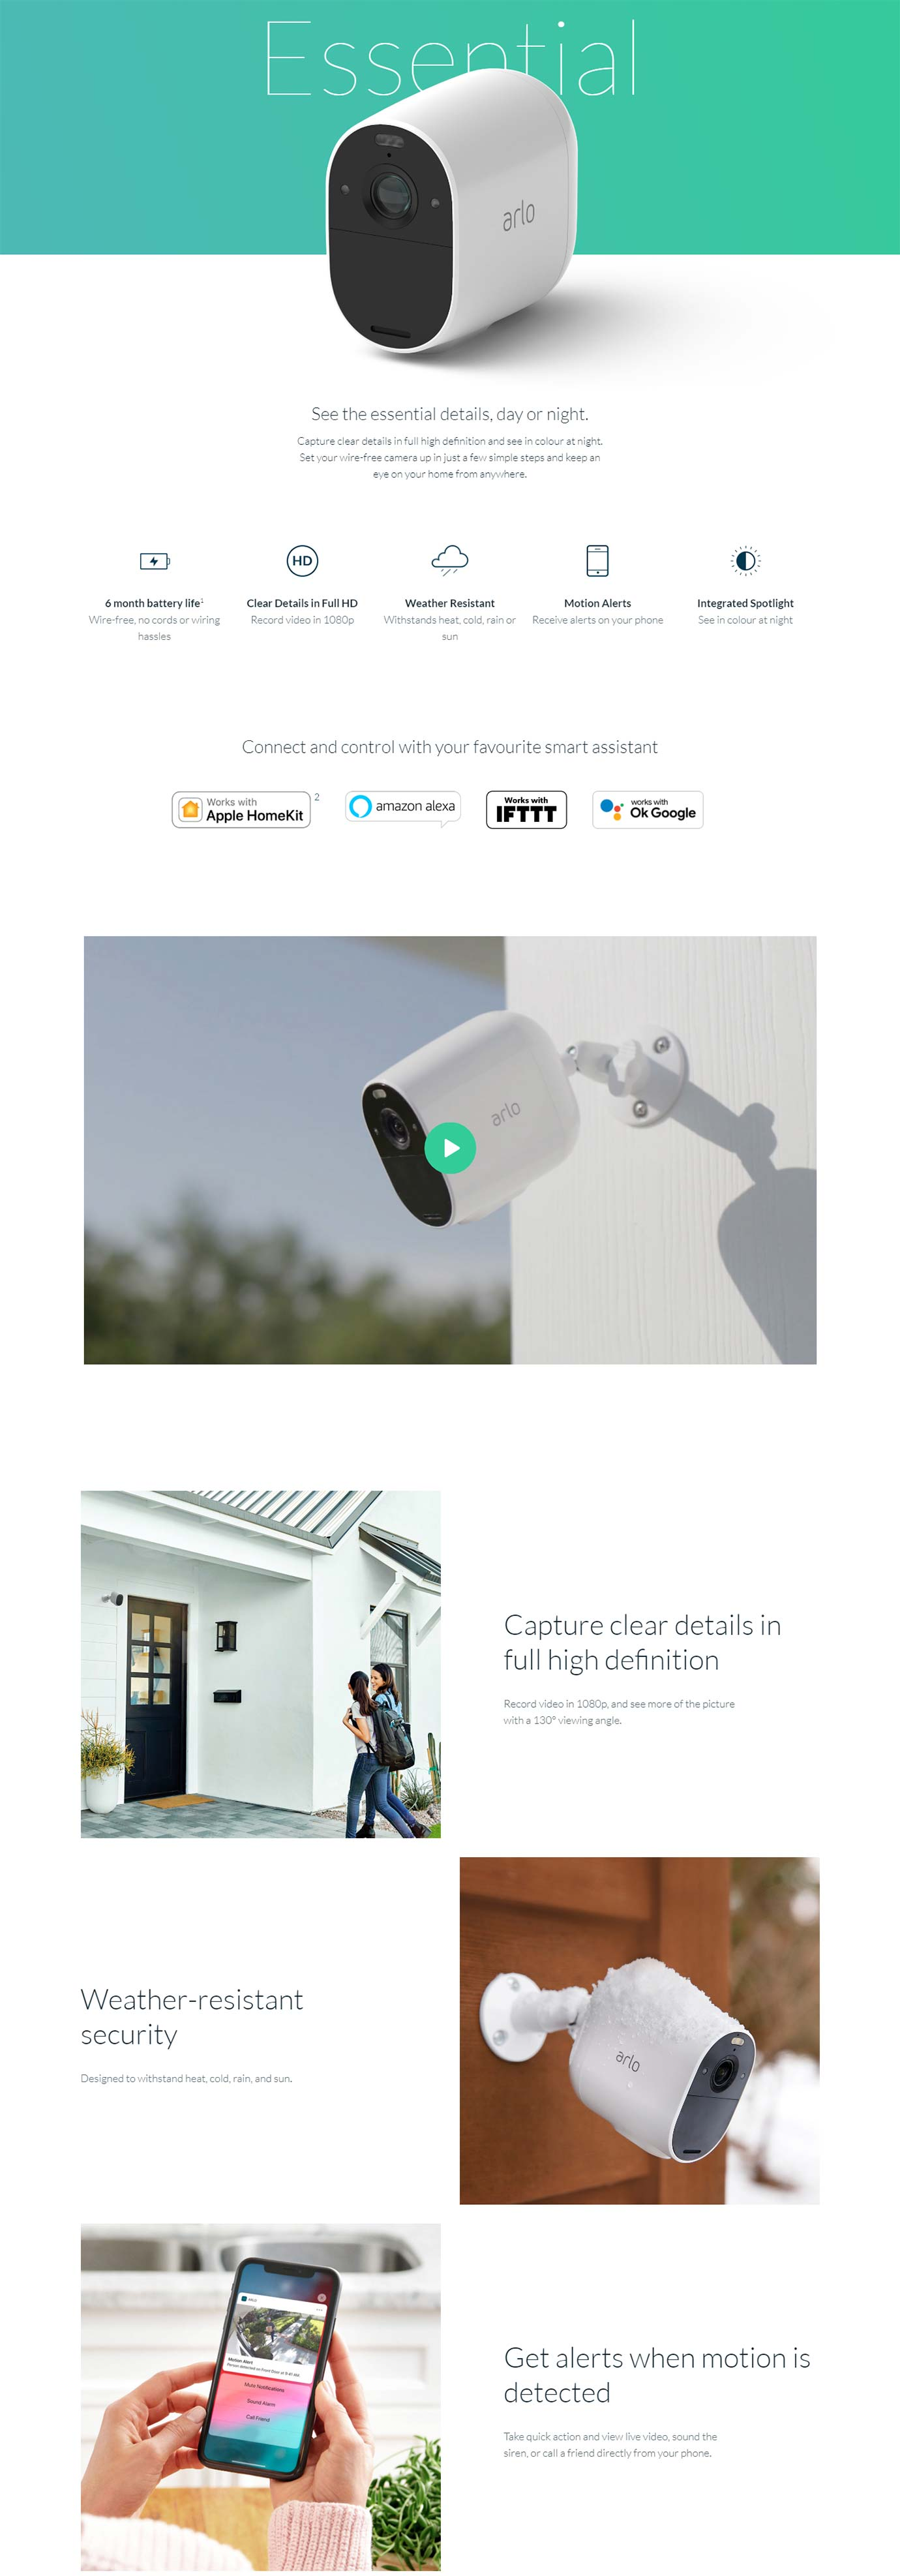 Arlo Essential XL Cameras